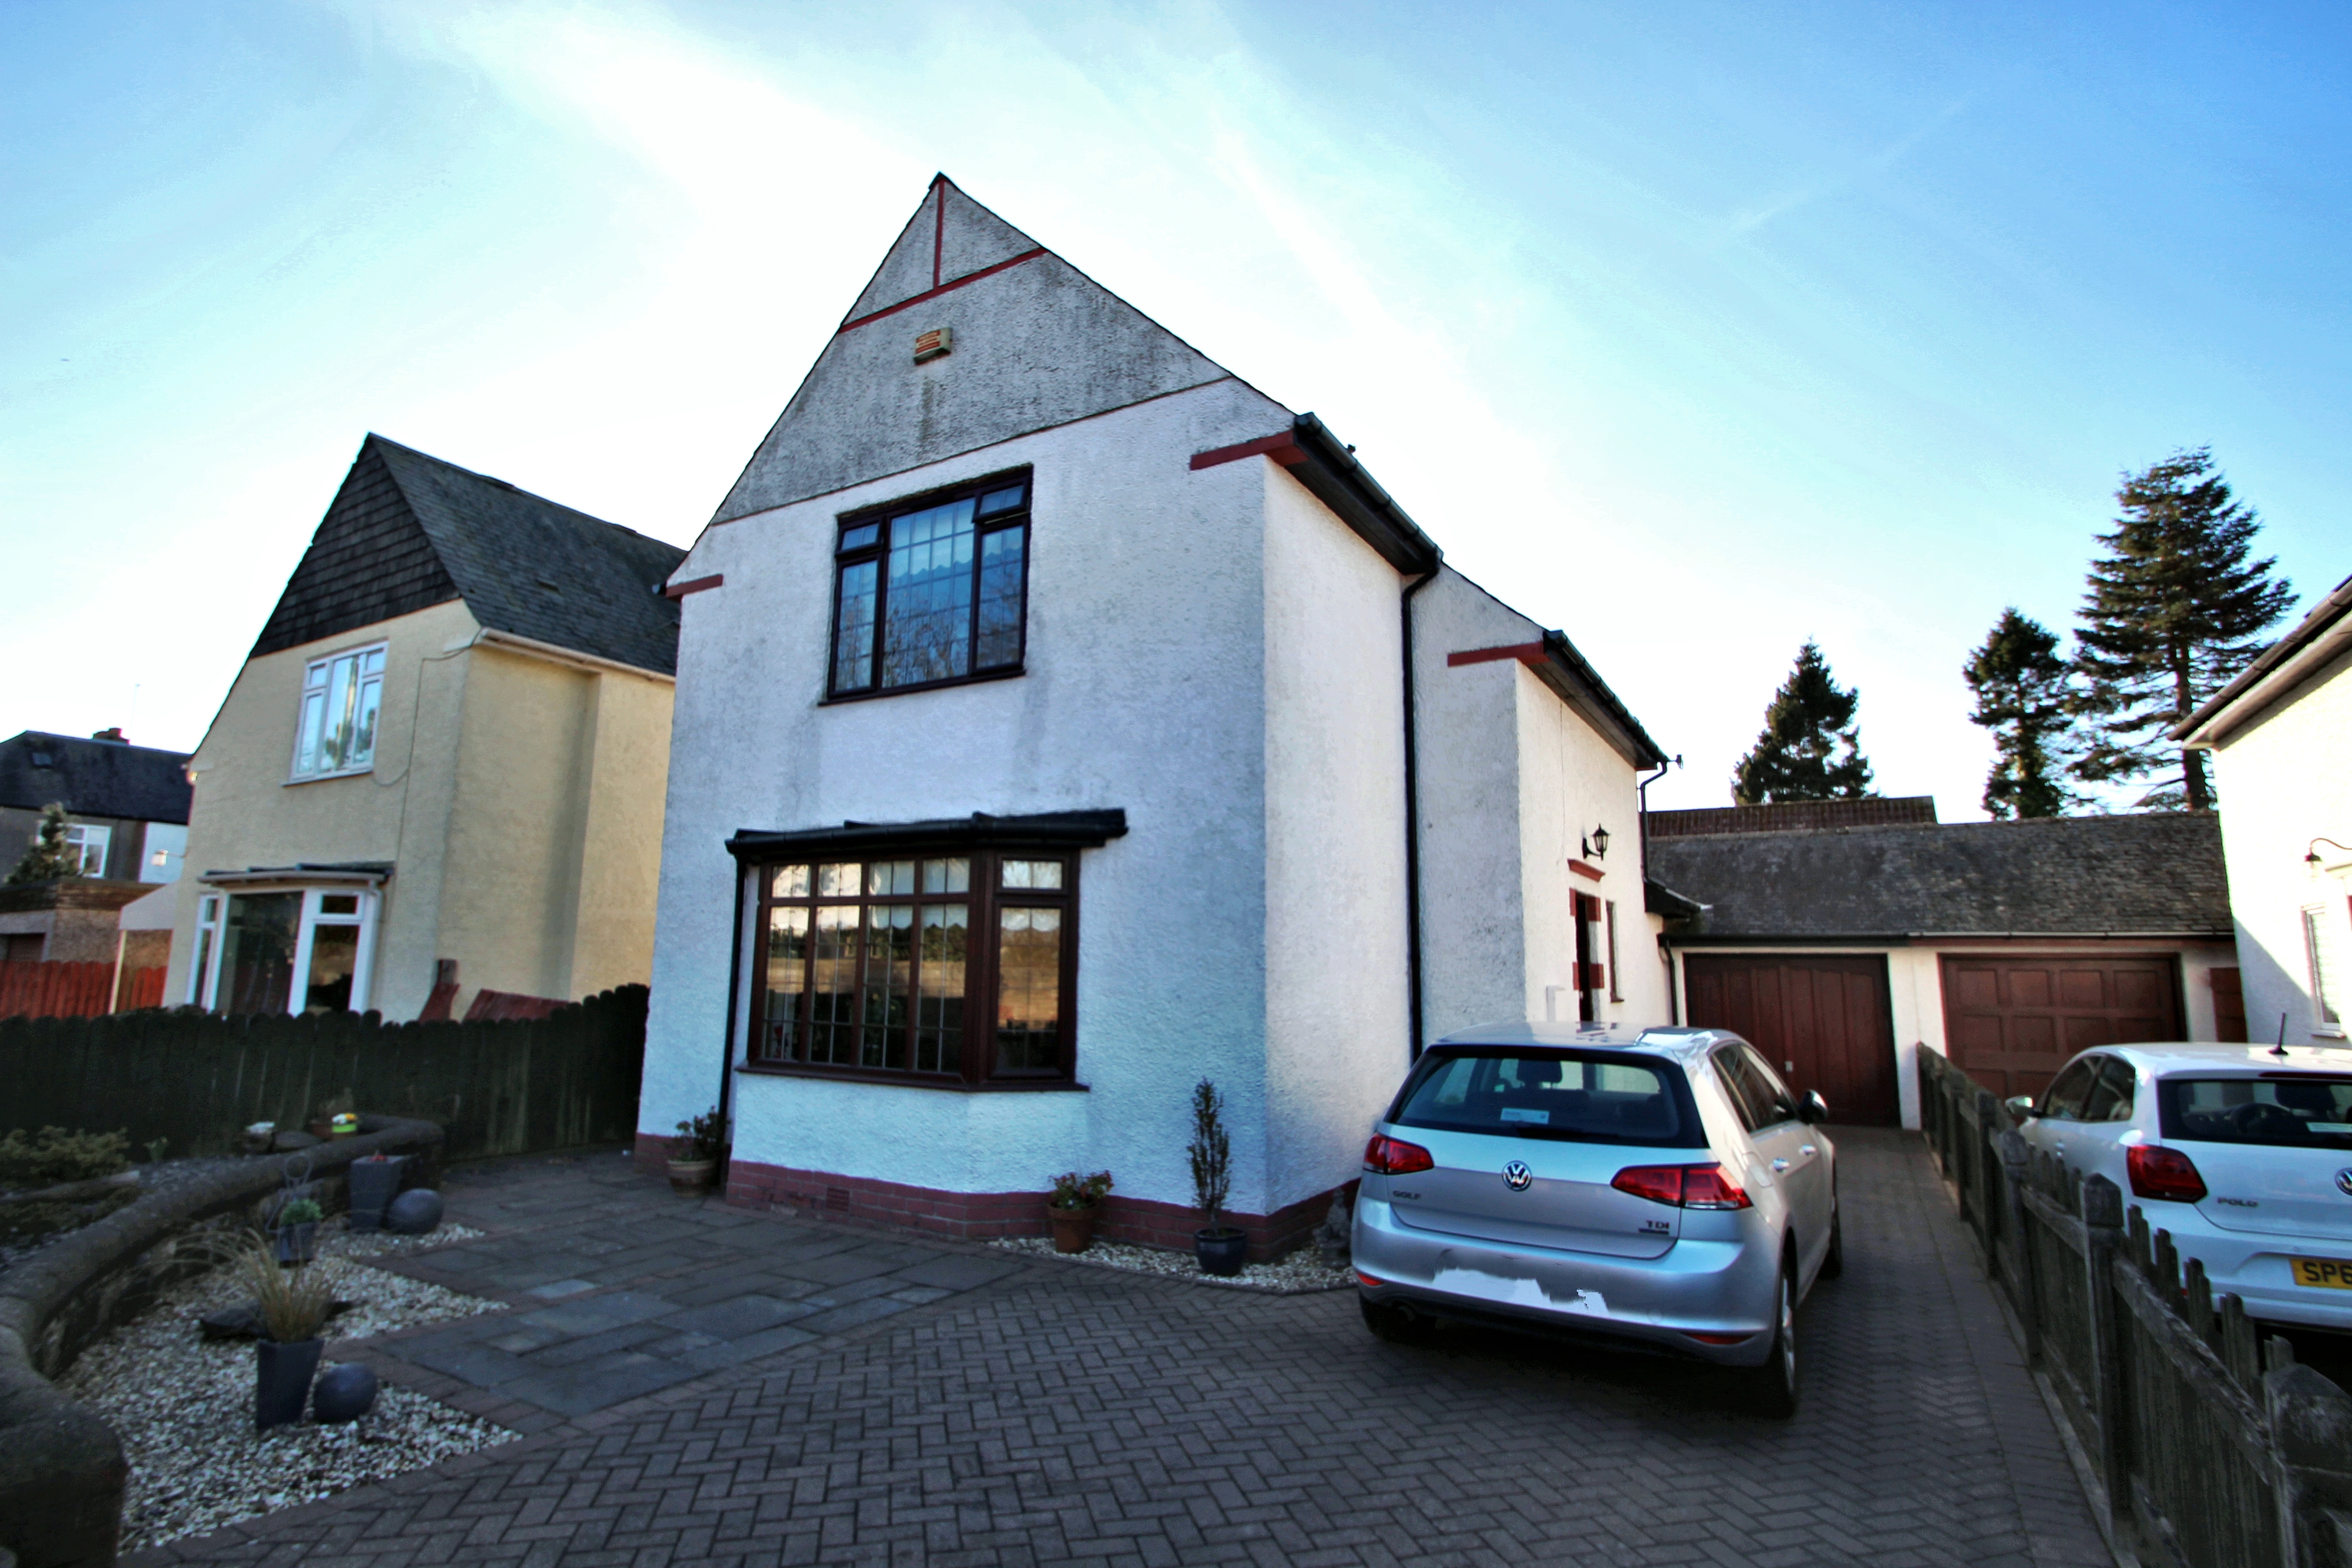 31 Forthill Road, Broughty Ferry, Dundee, DD5 3DP